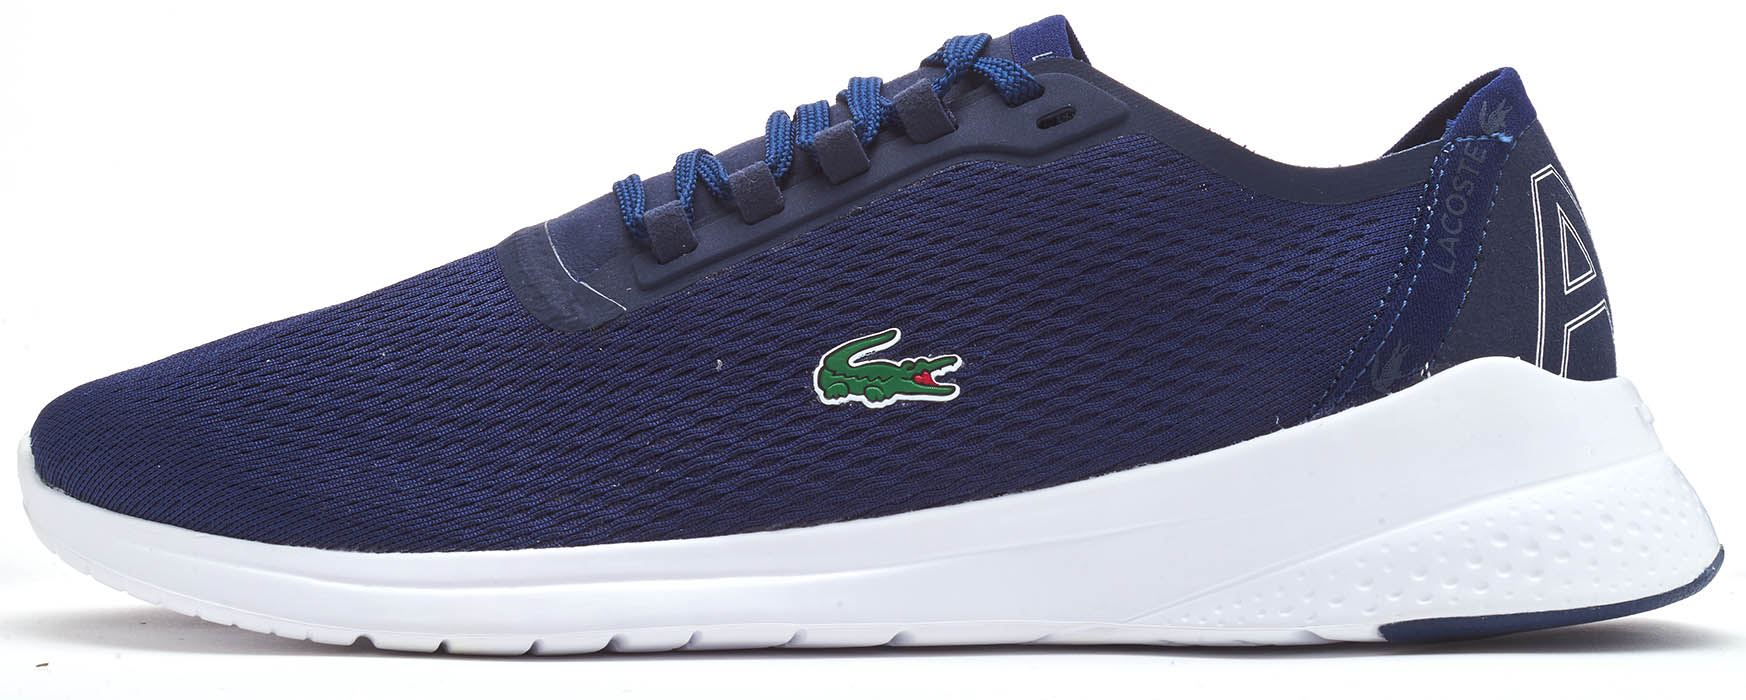 fa18a8786eb Description Lacoste LT FIT 119 1 SMA Textile Lace Up Running Trainers in  Black & Navy Blue A lightweight, running-inspired athleisure style  refreshed with a ...